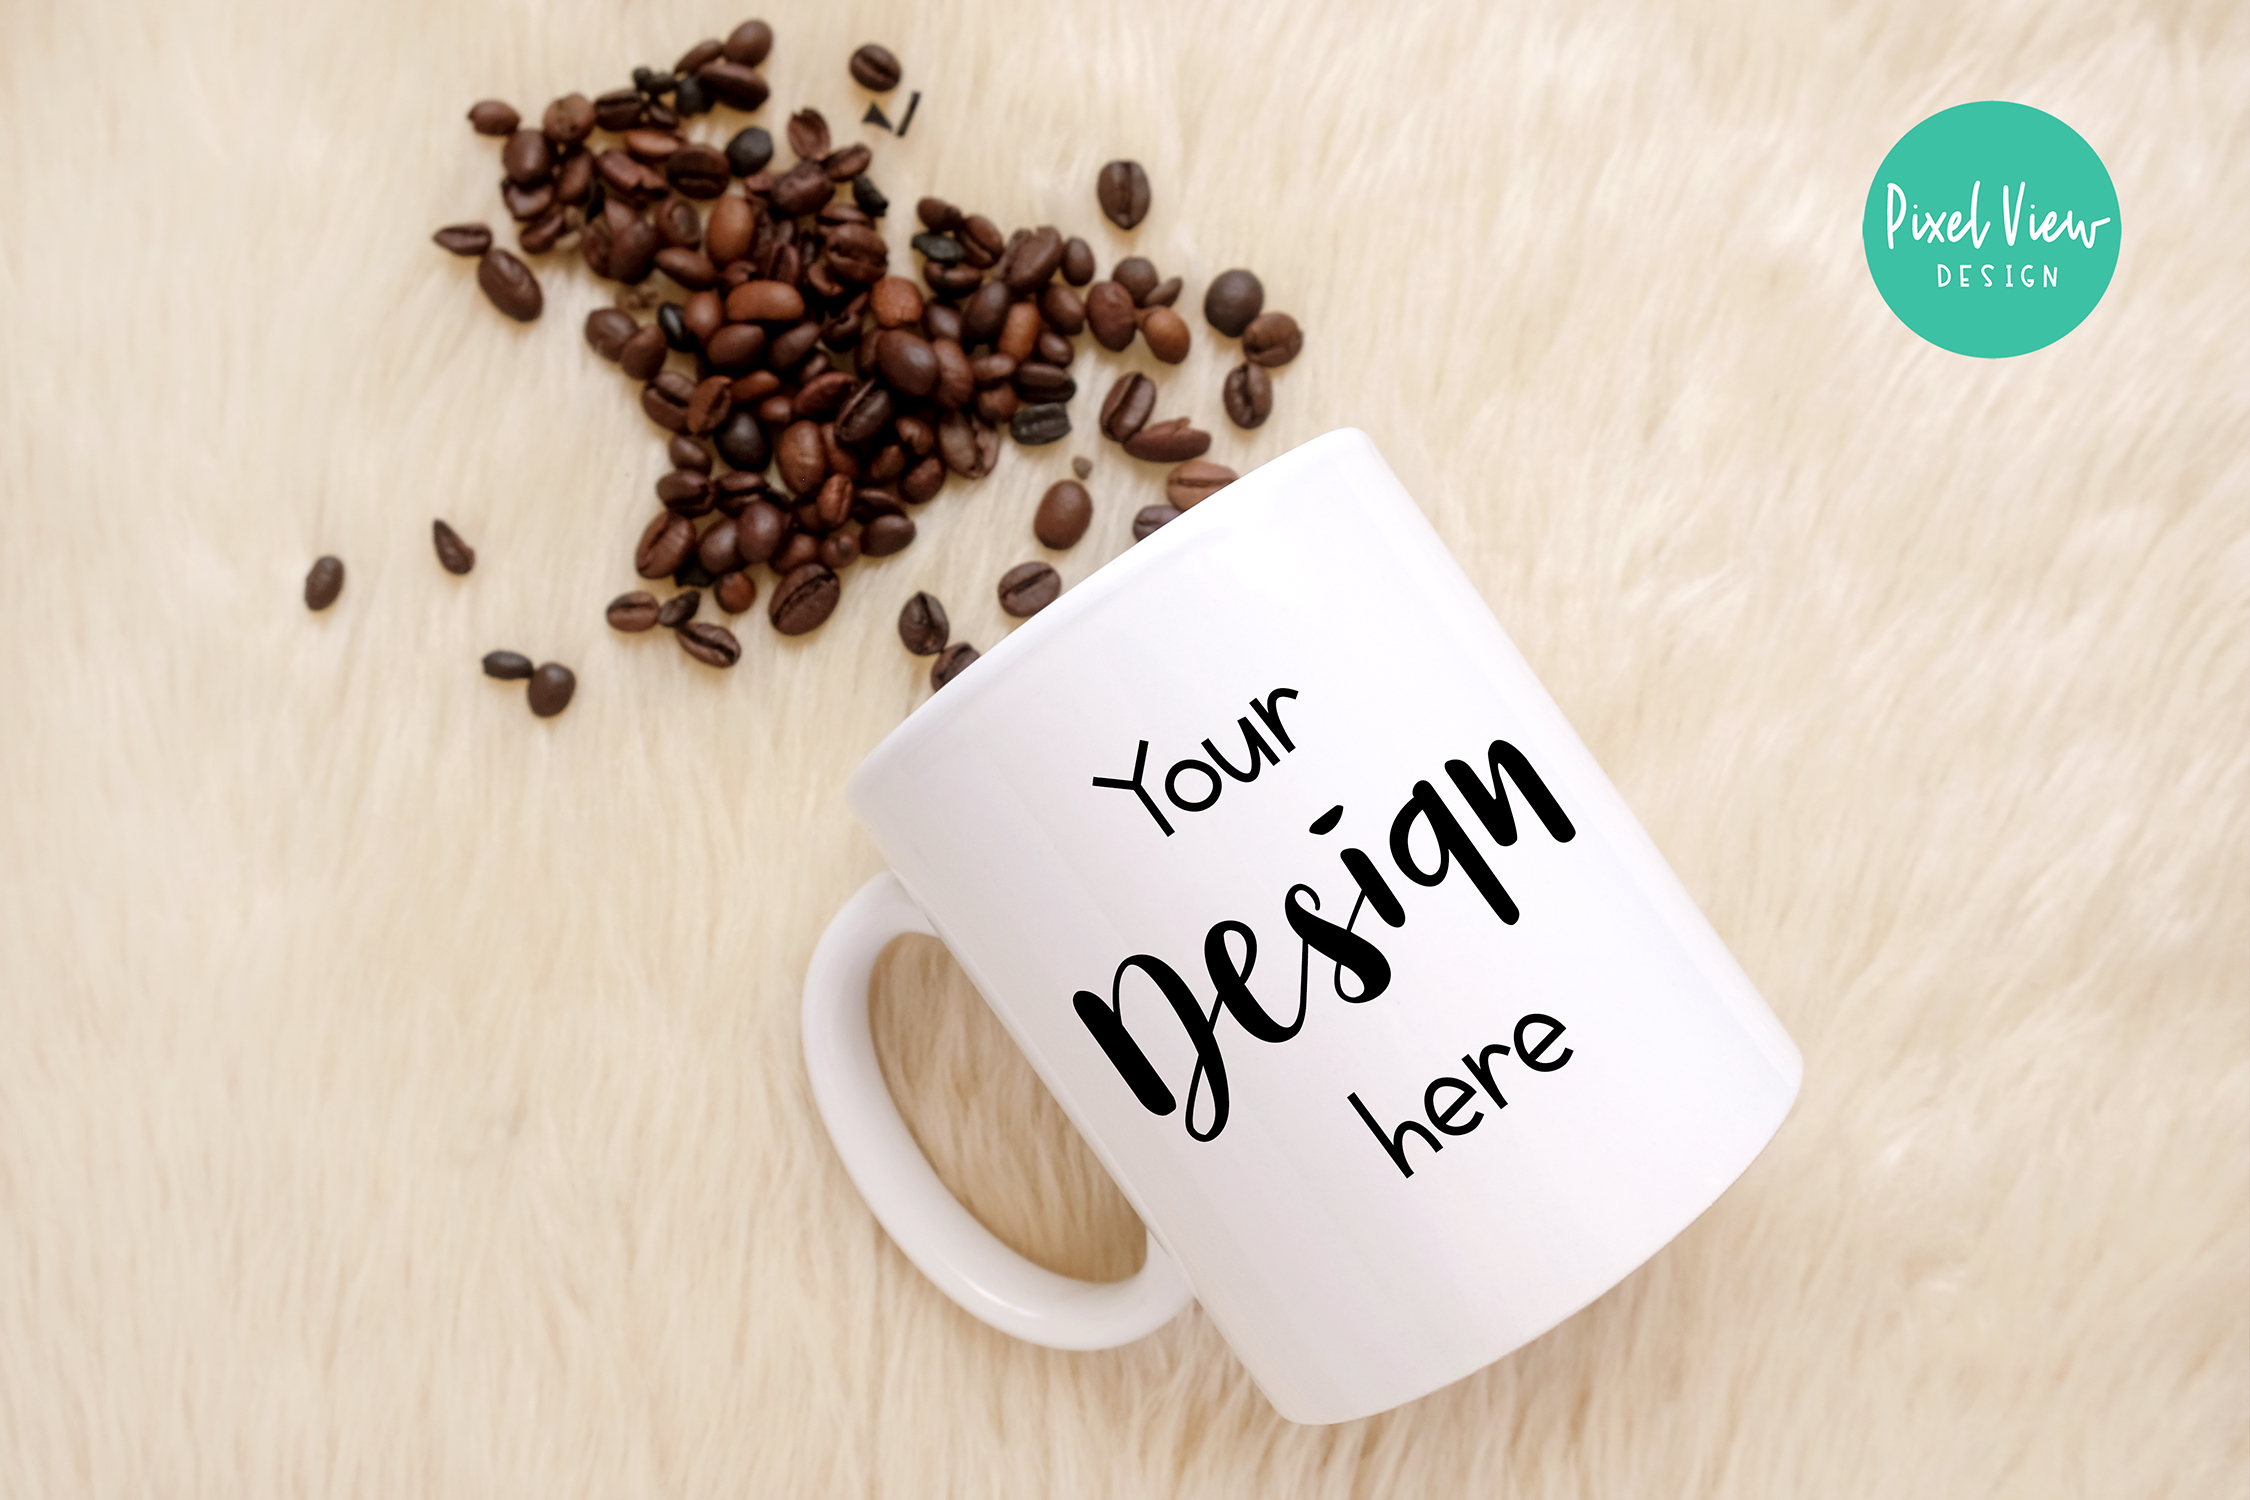 Download Free White Mug Mockup With Coffee Beans Graphic By Pixel View Design for Cricut Explore, Silhouette and other cutting machines.